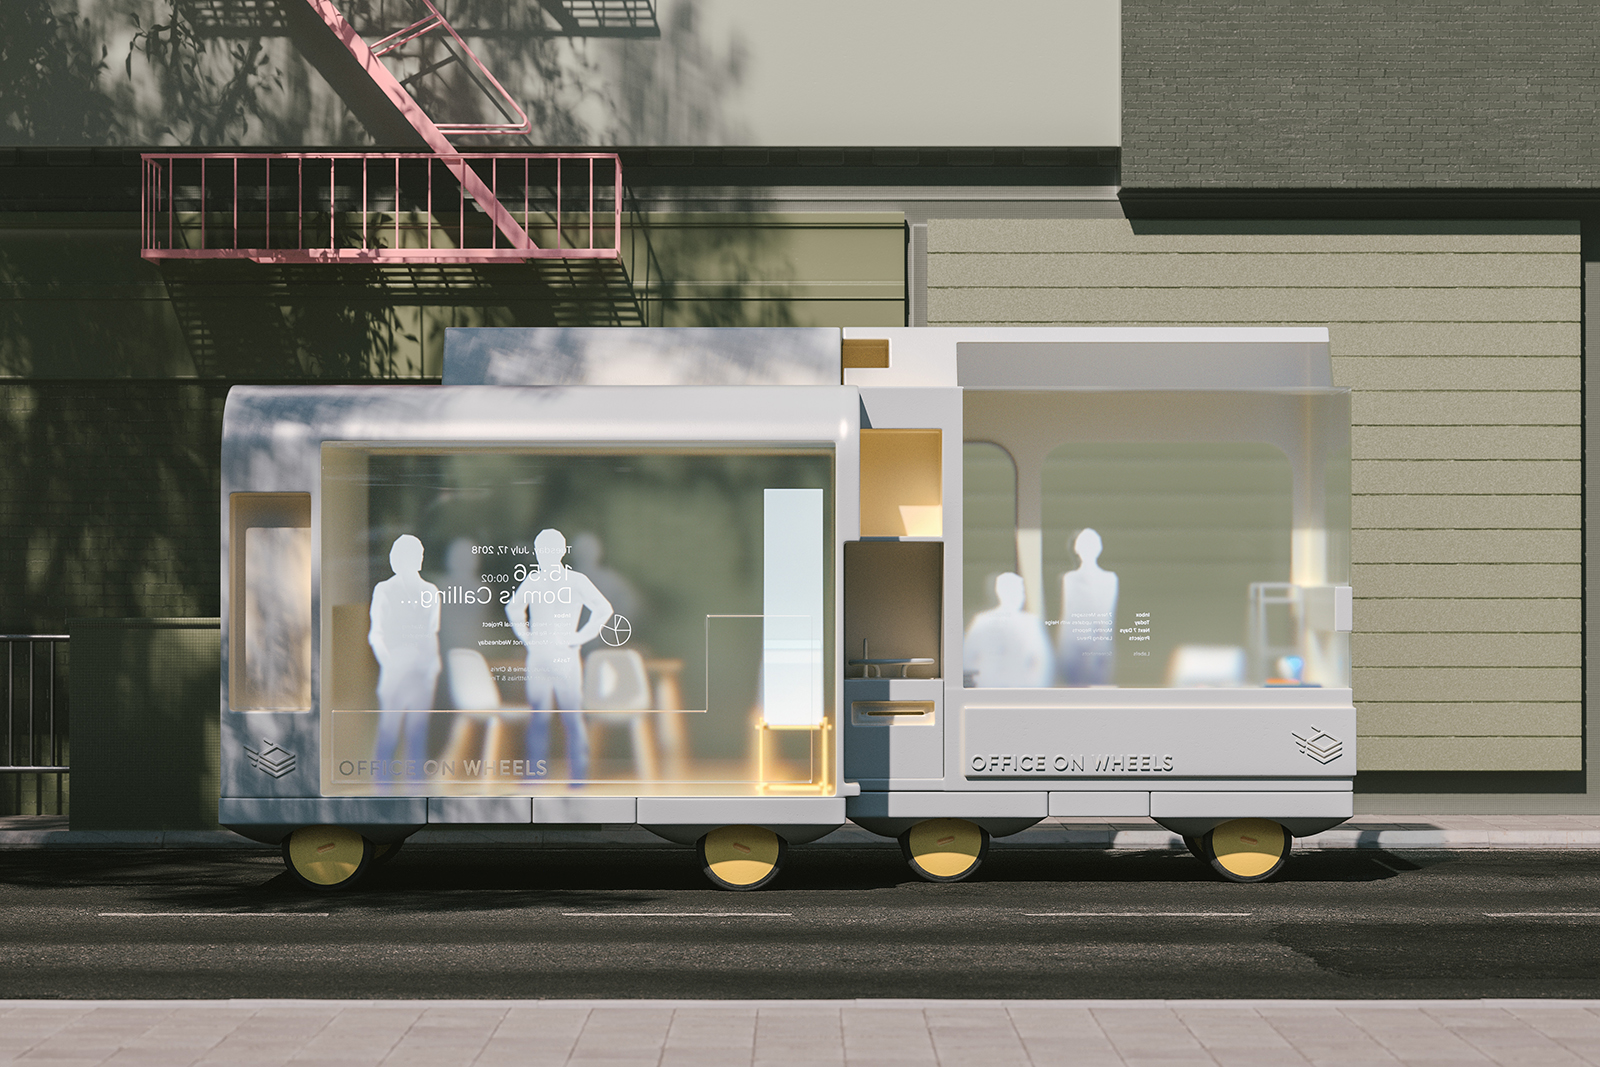 Ikea's Space10 imagines the future of self-driving cars